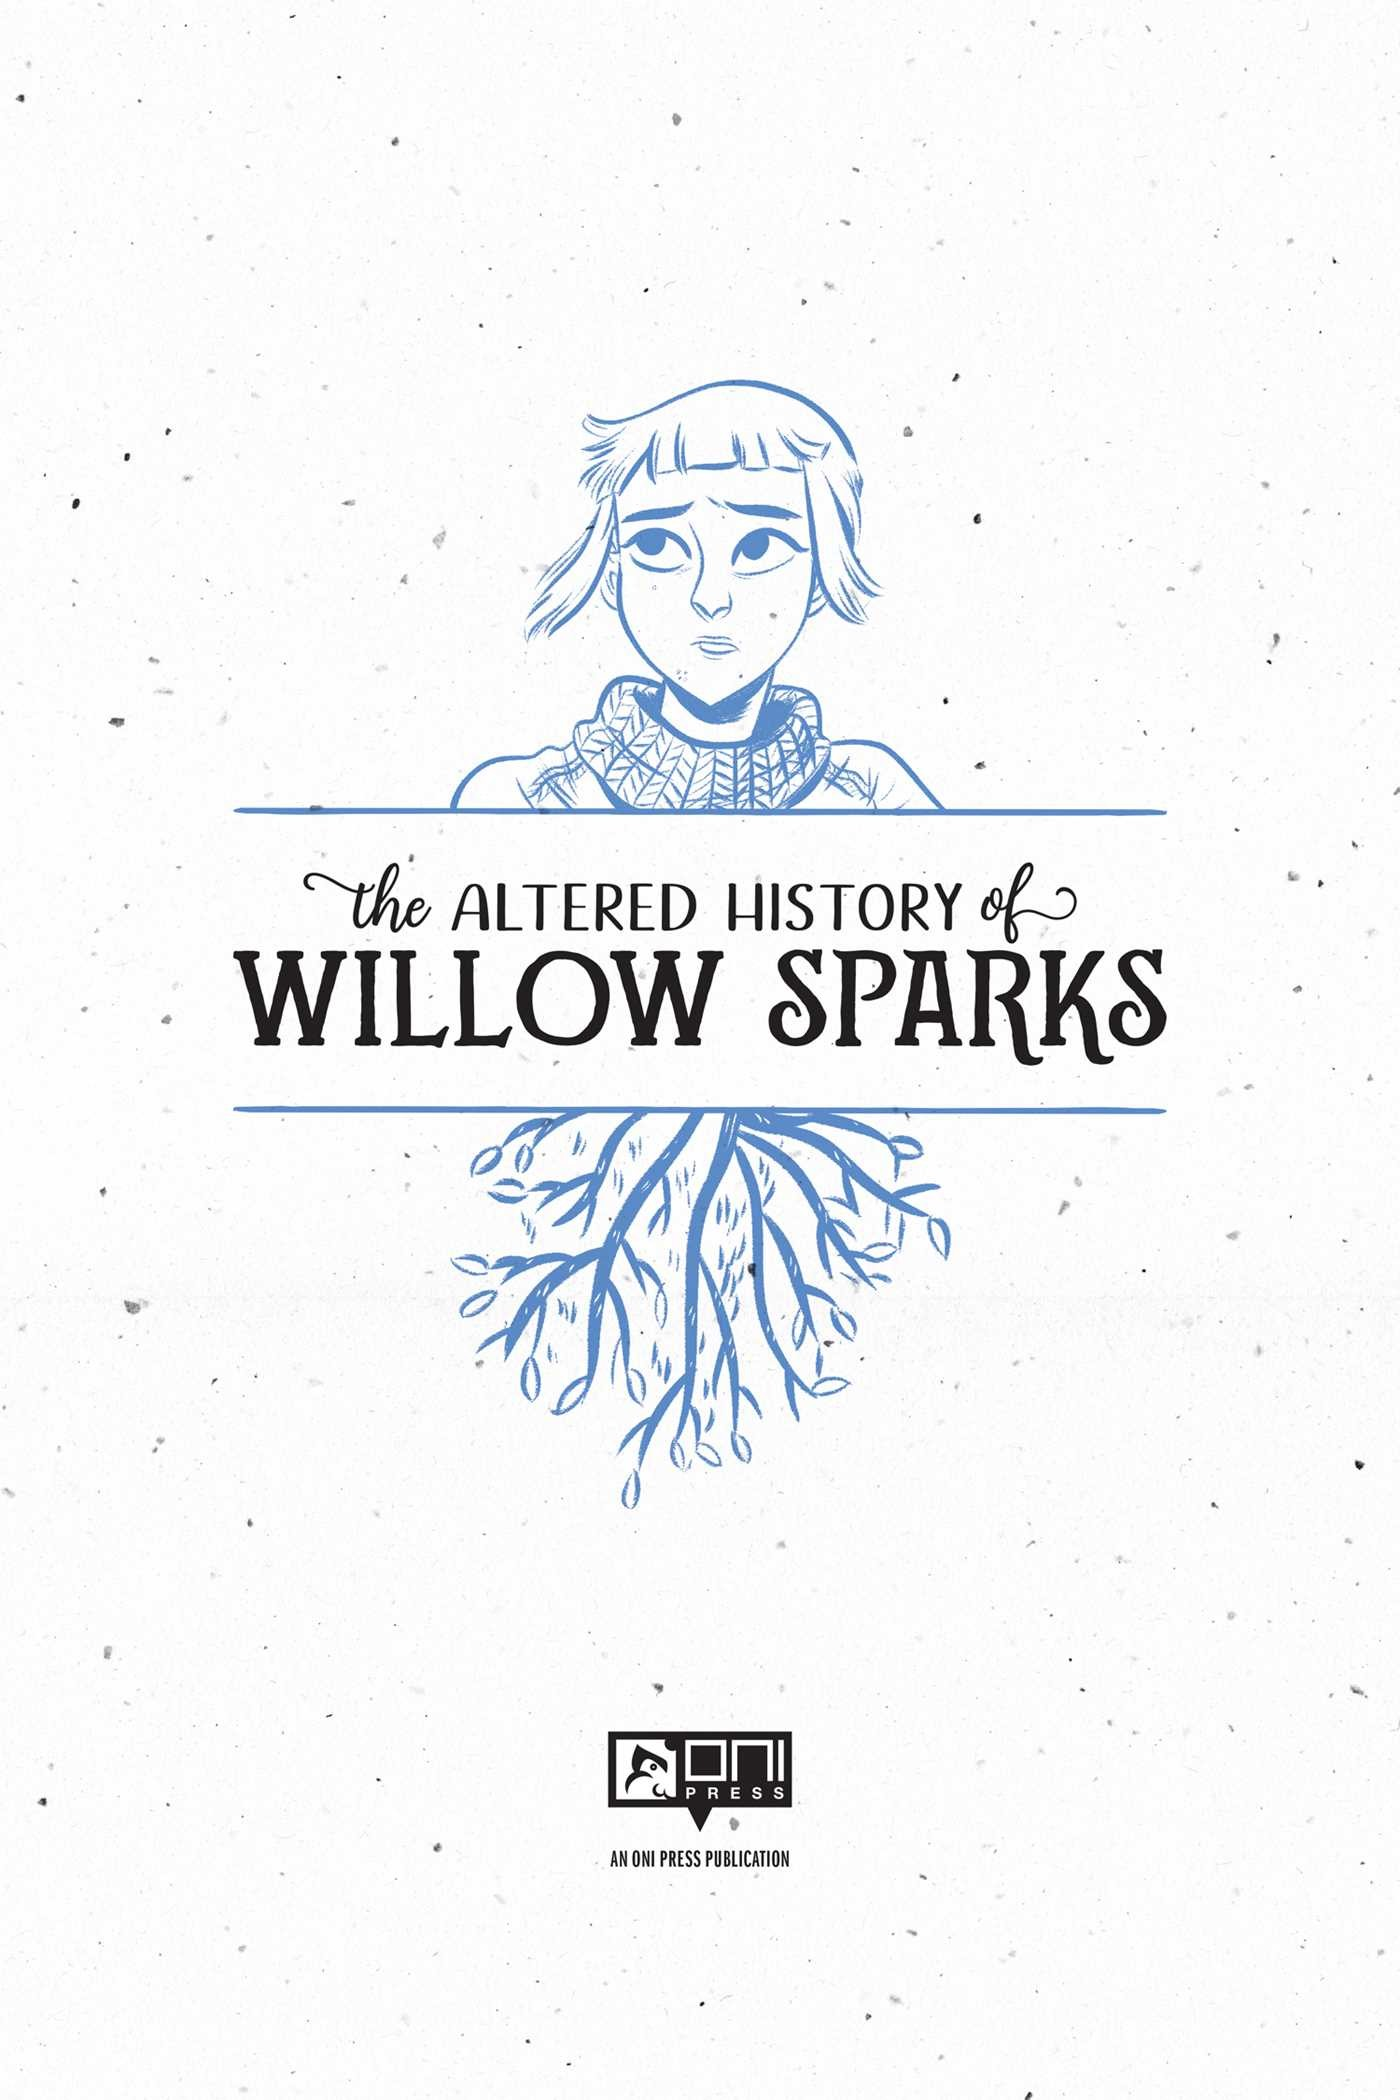 The altered history of willow sparks 9781620104507.in01